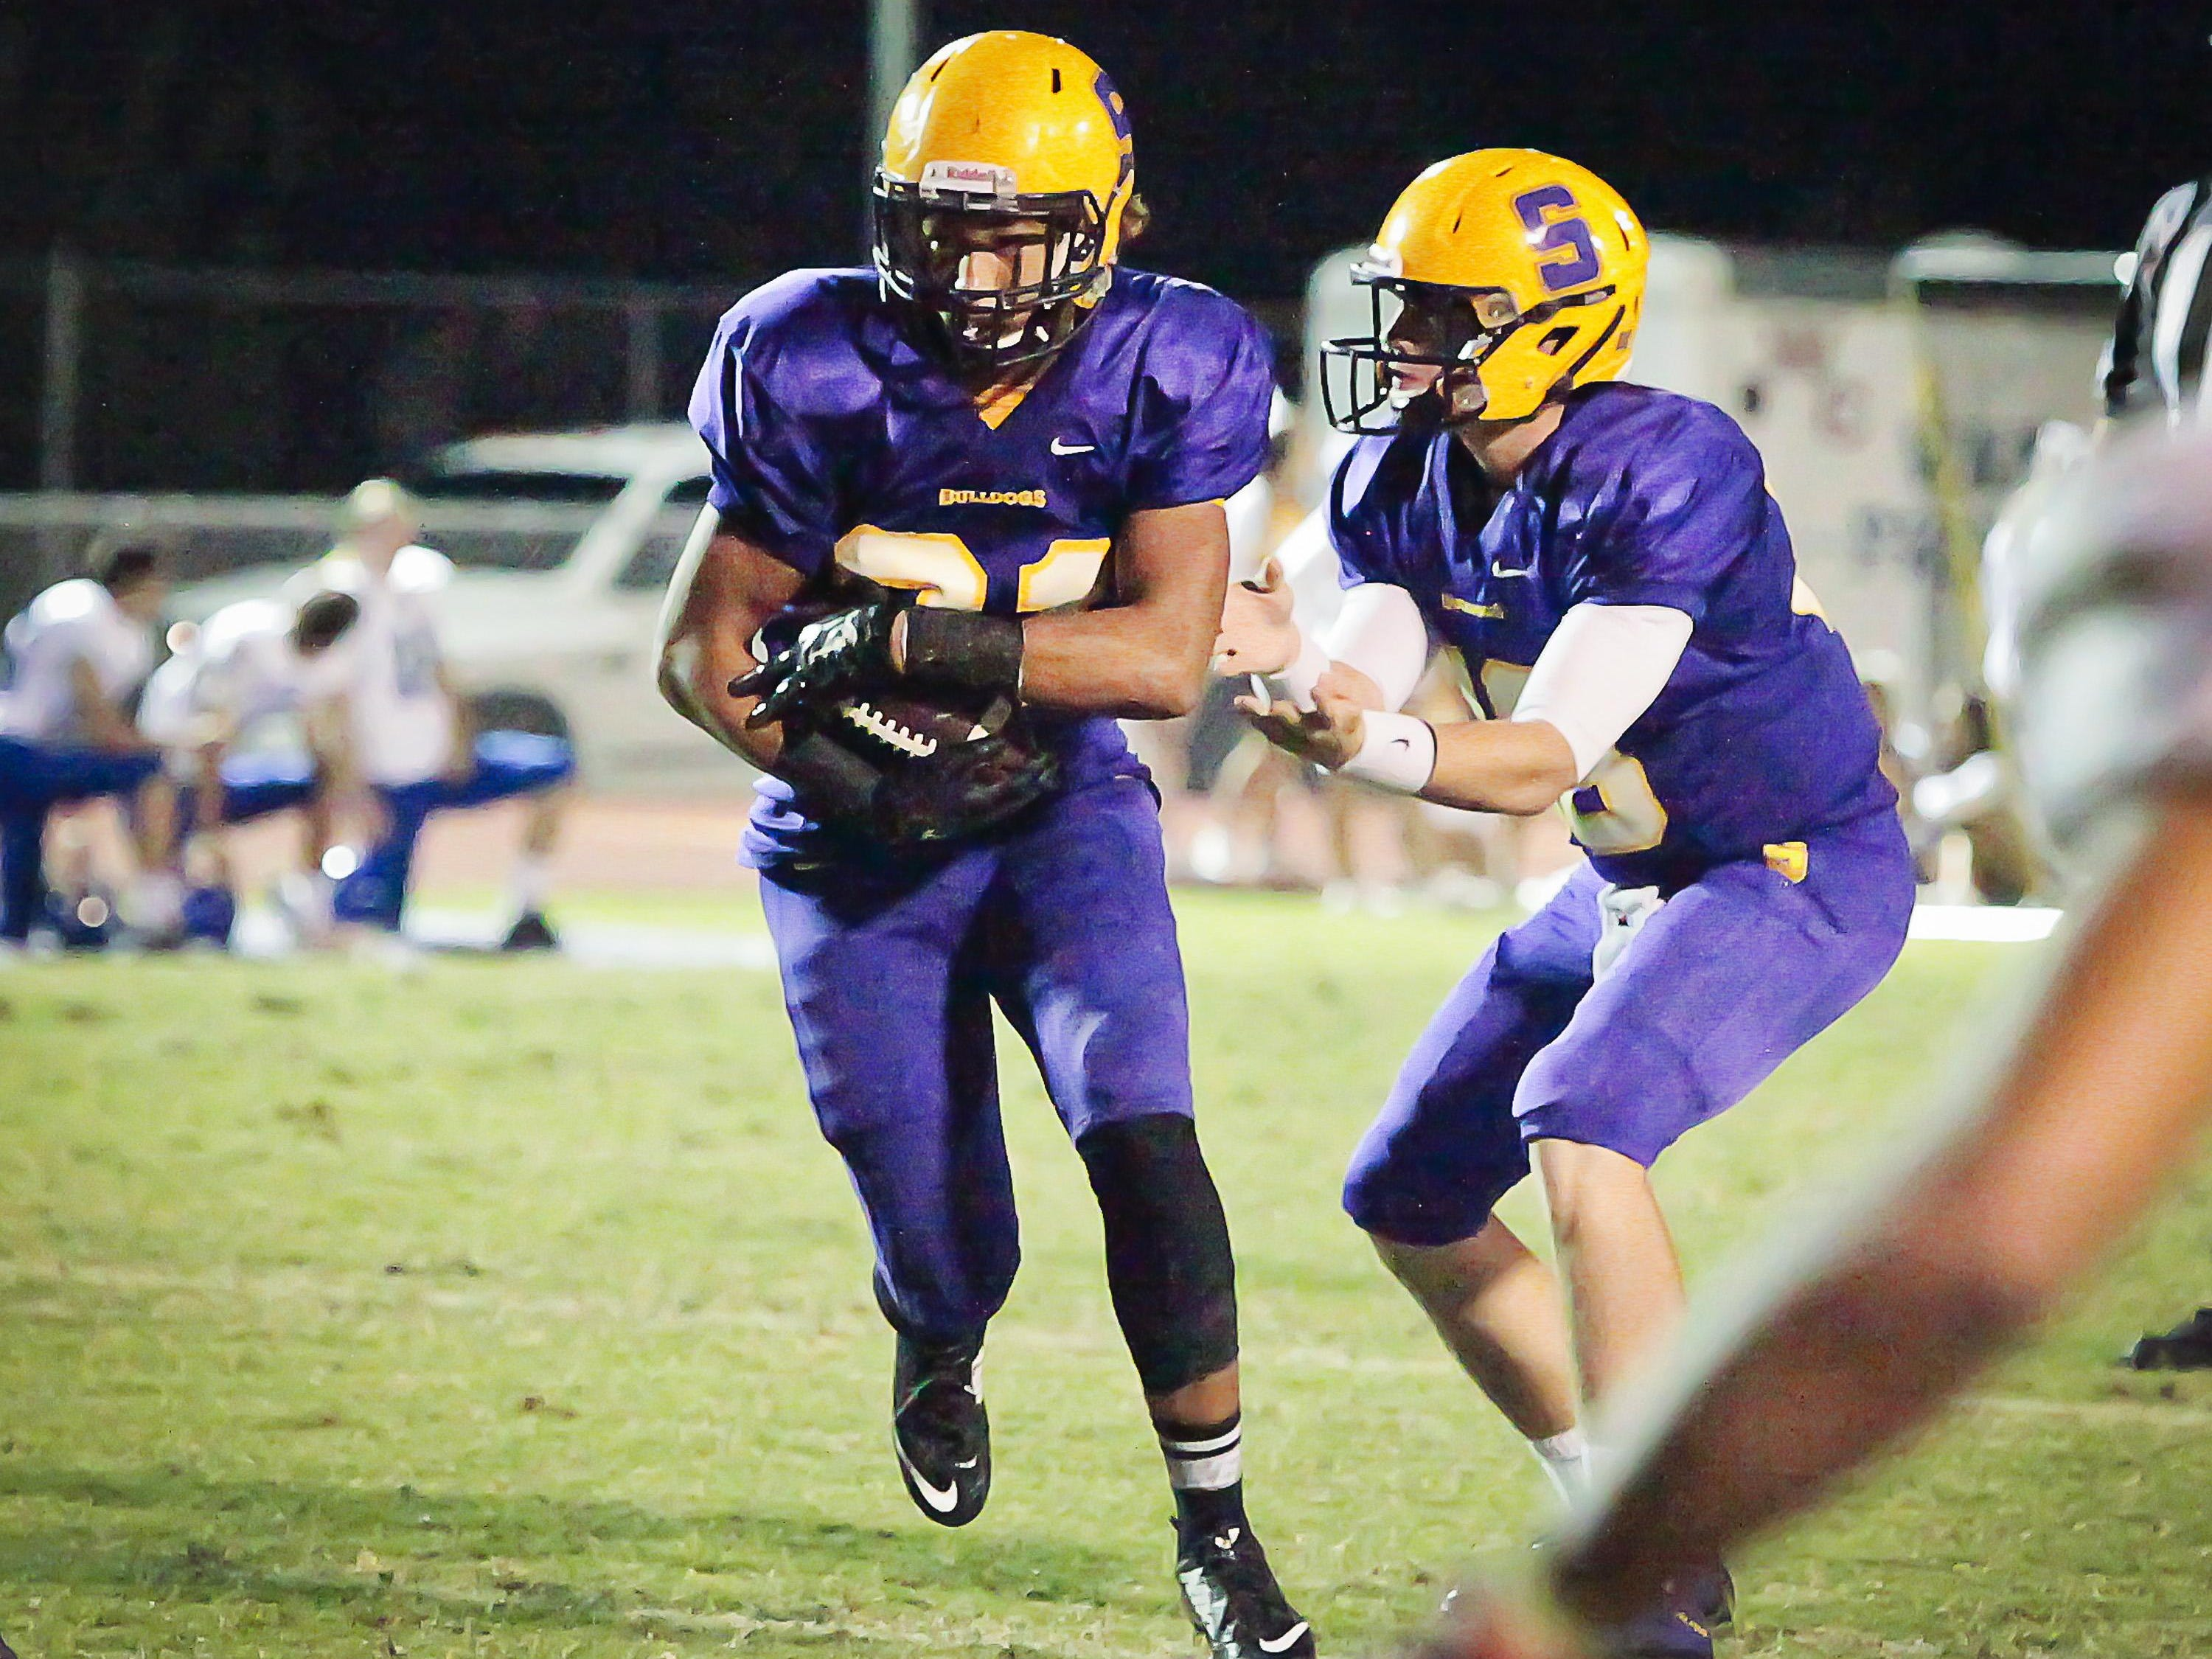 Kevin Sims, #31, takes a handoff from quarterback John Turner and runs for a touchdown.